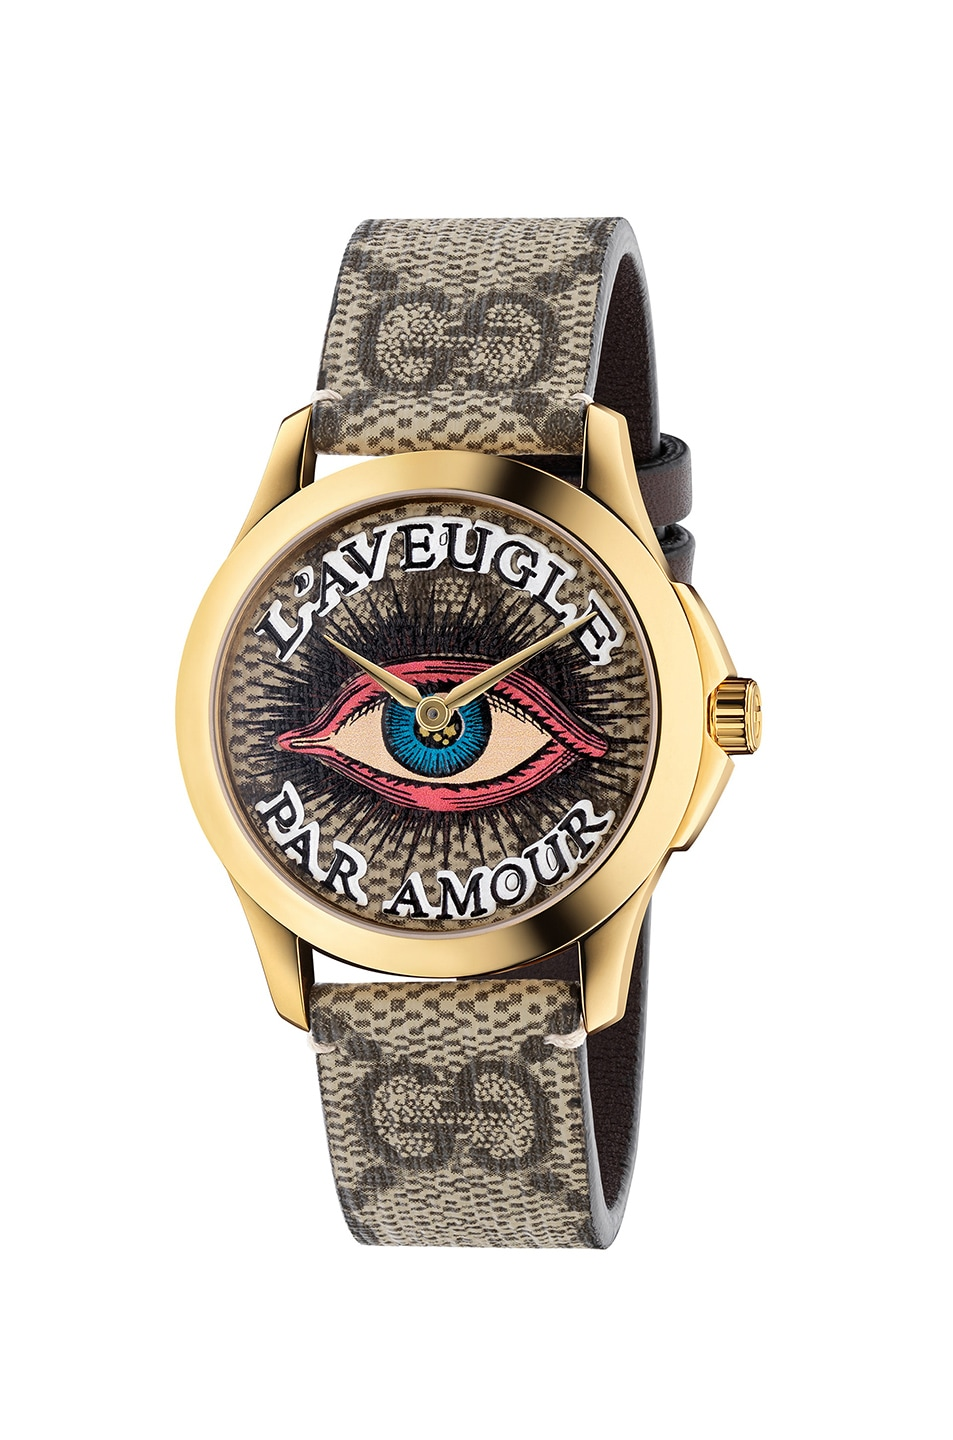 8215af8fa33 Image 1 of Gucci 38MM G-Timeless Eye Motif Watch in Beige   Multicolor